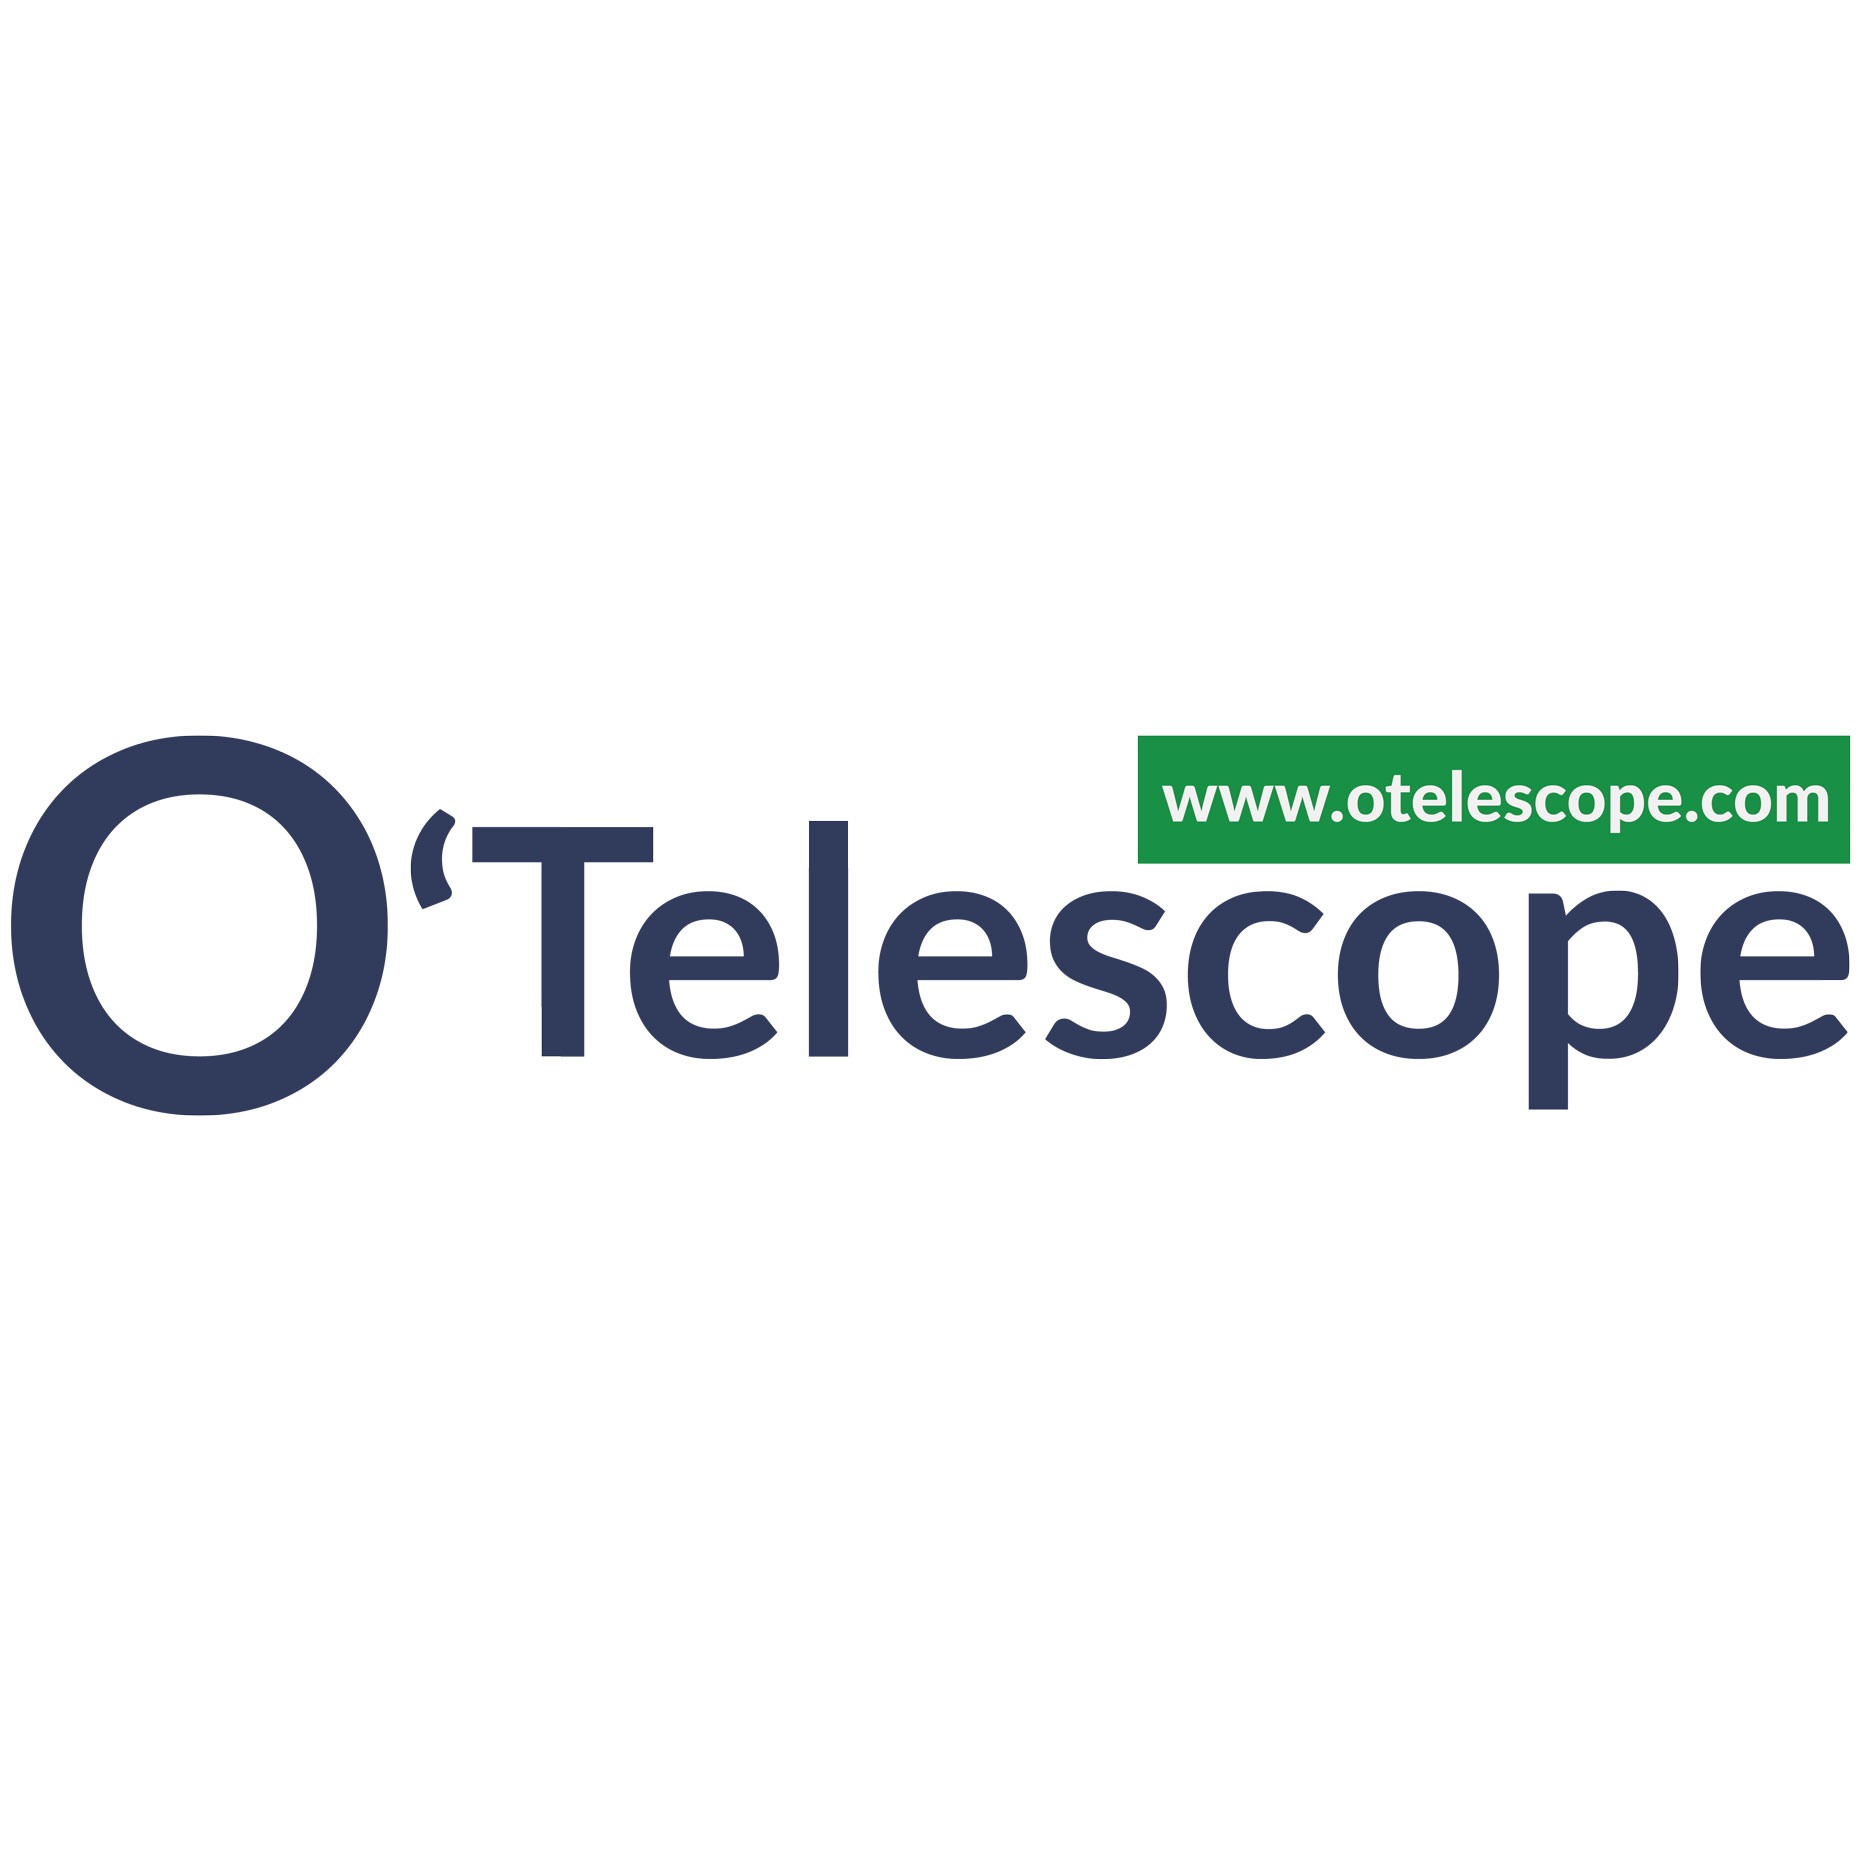 O'Telescope Corporation is our important partner in Canada